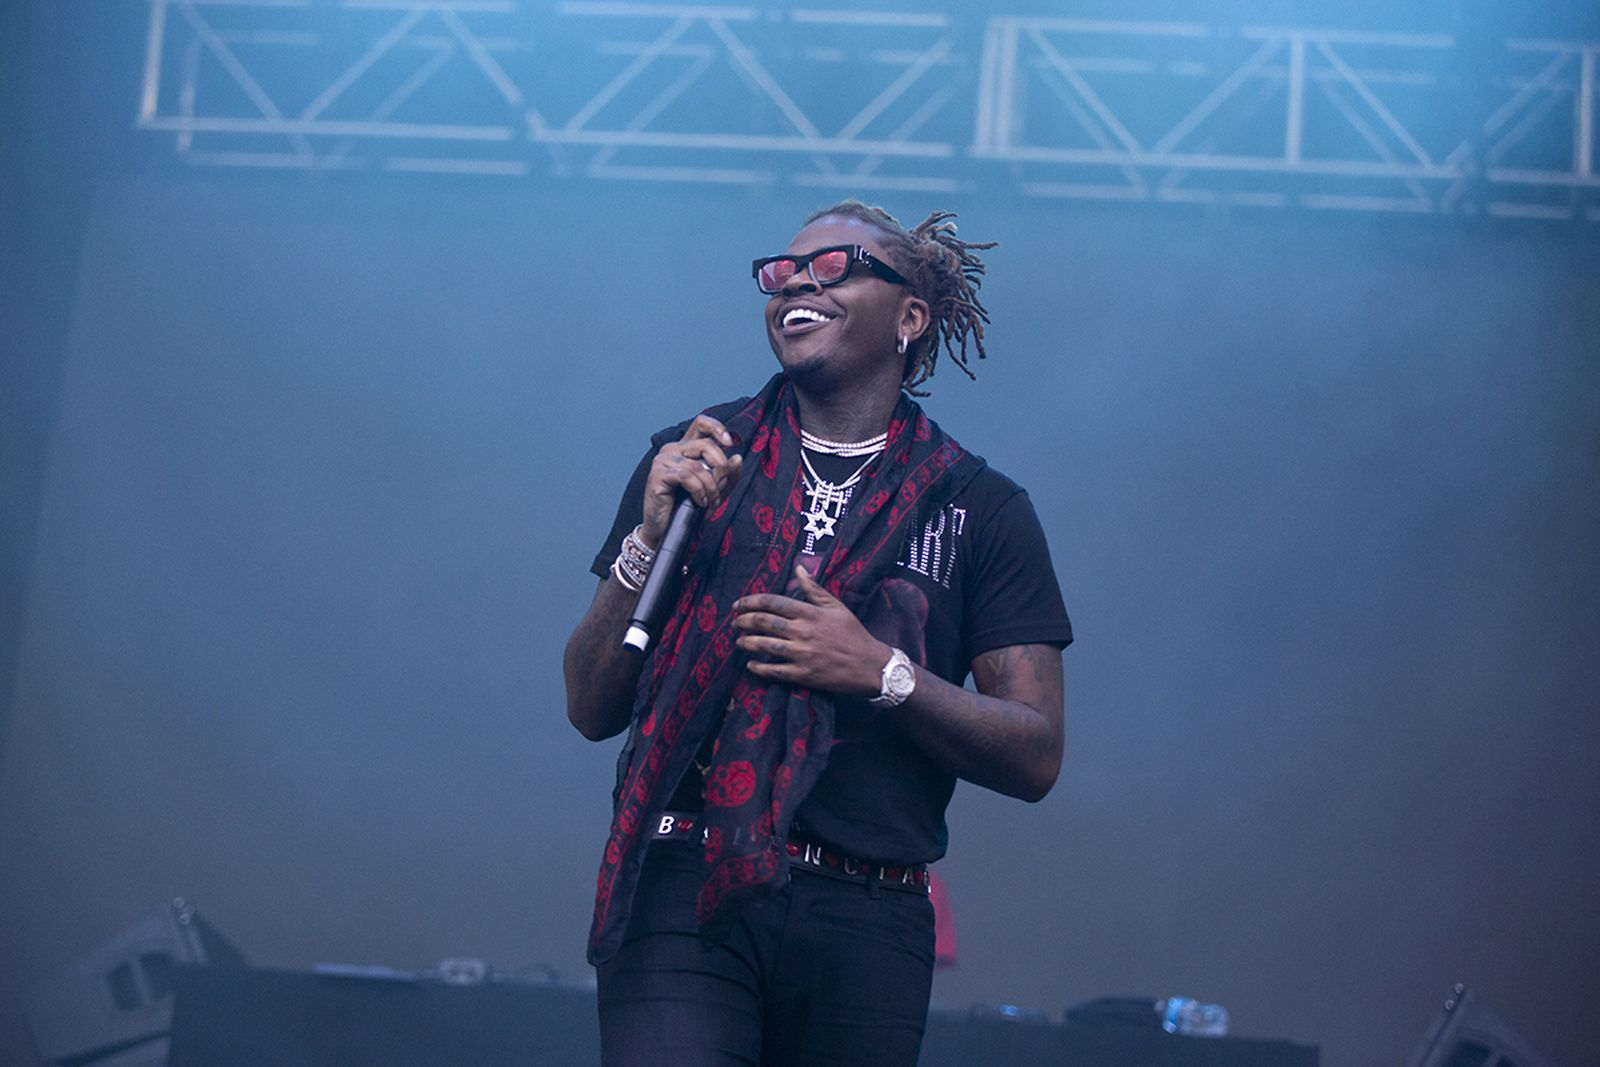 Gunna performs at Lollapalooza in Chicago